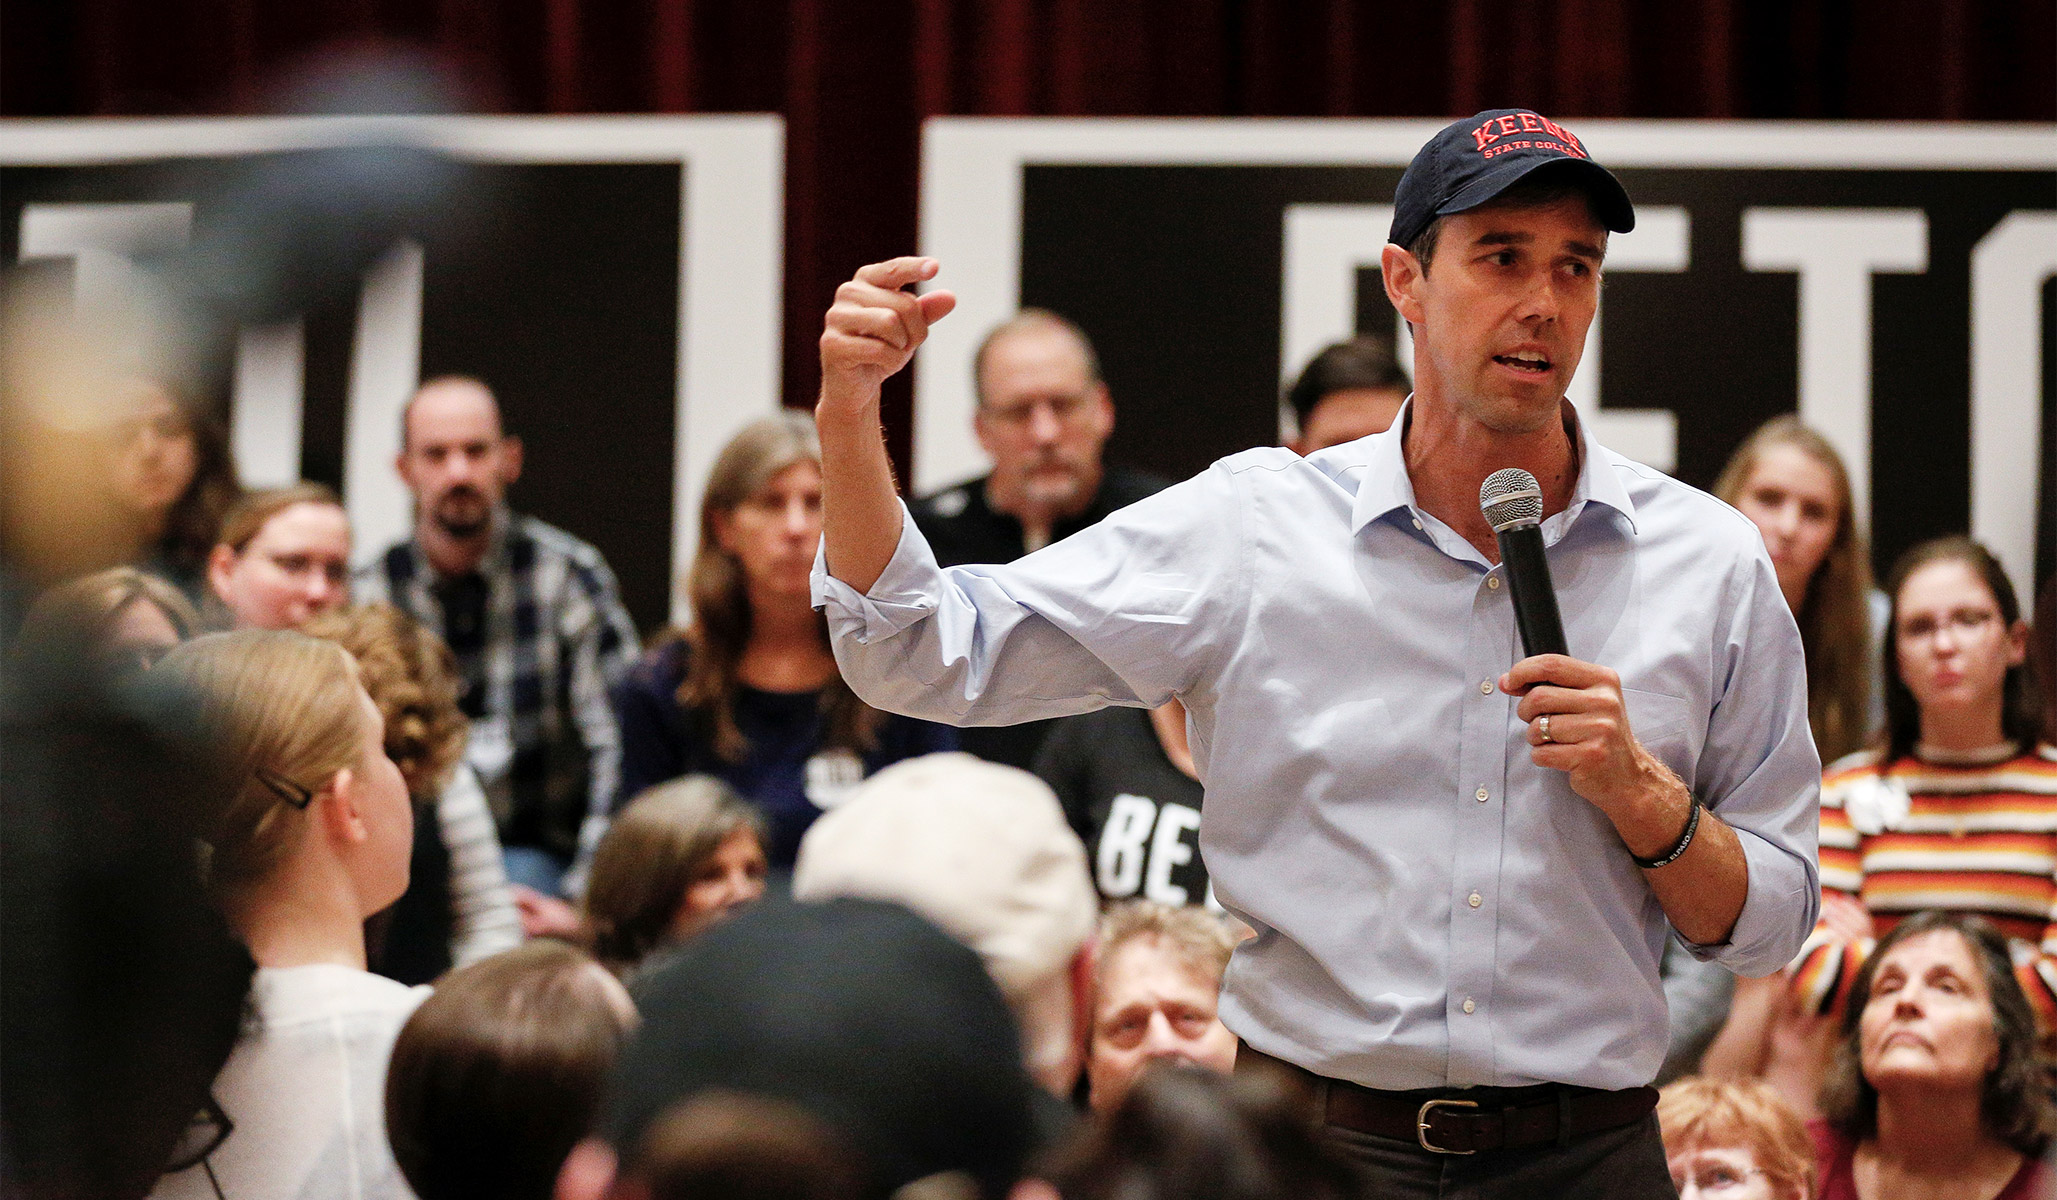 O'Rourke Defends Comments Comparing Trump's America to Nazi Germany